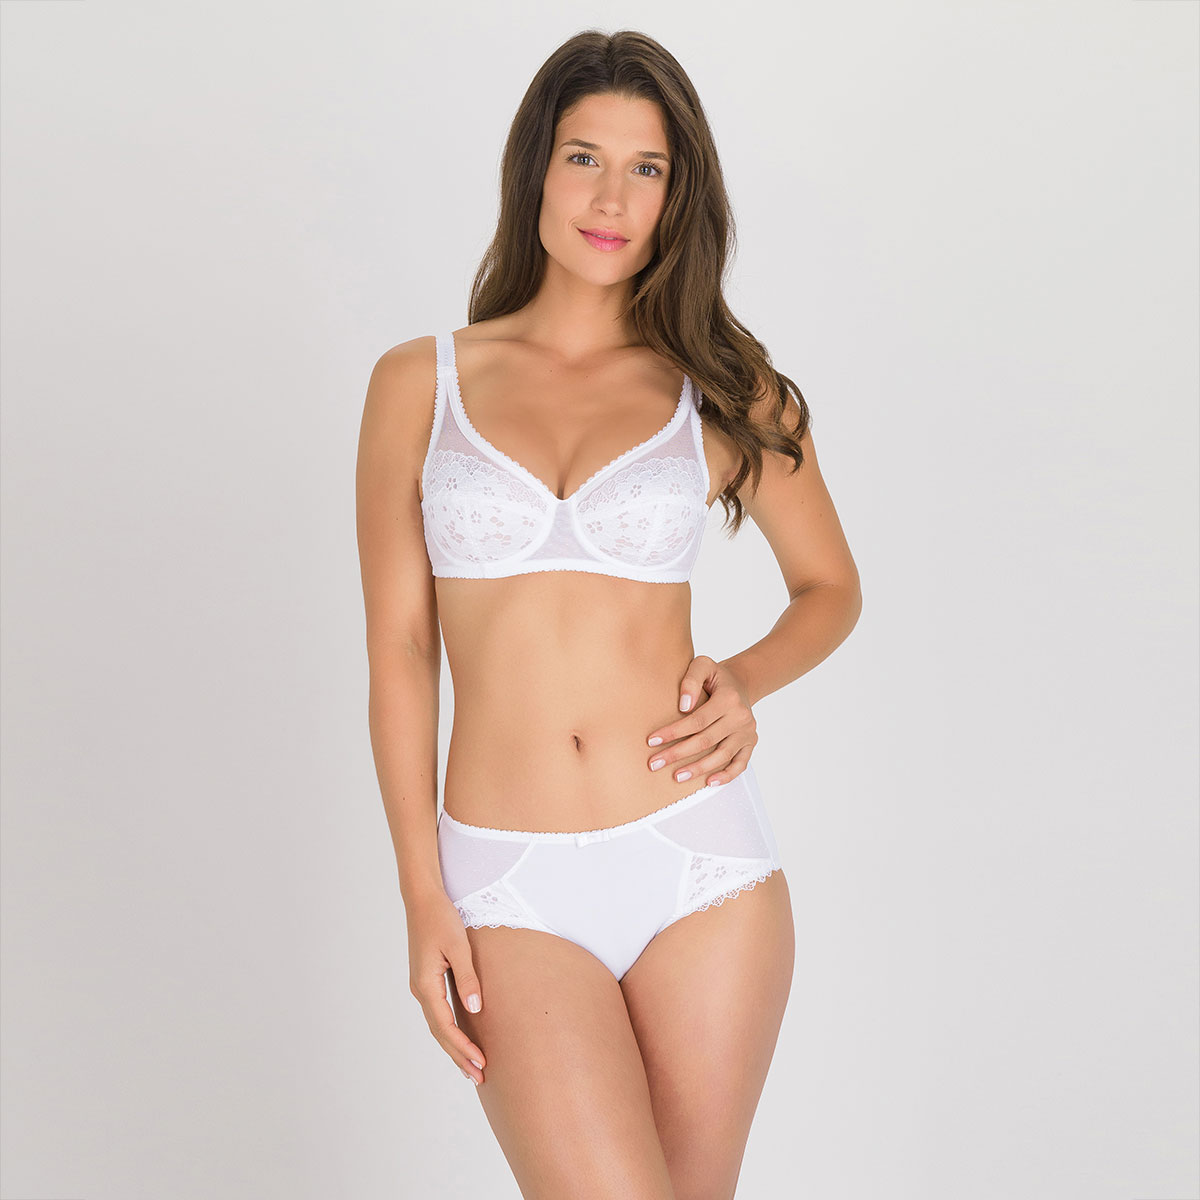 Full Cup Bra in White – Classic Lace Support, , PLAYTEX